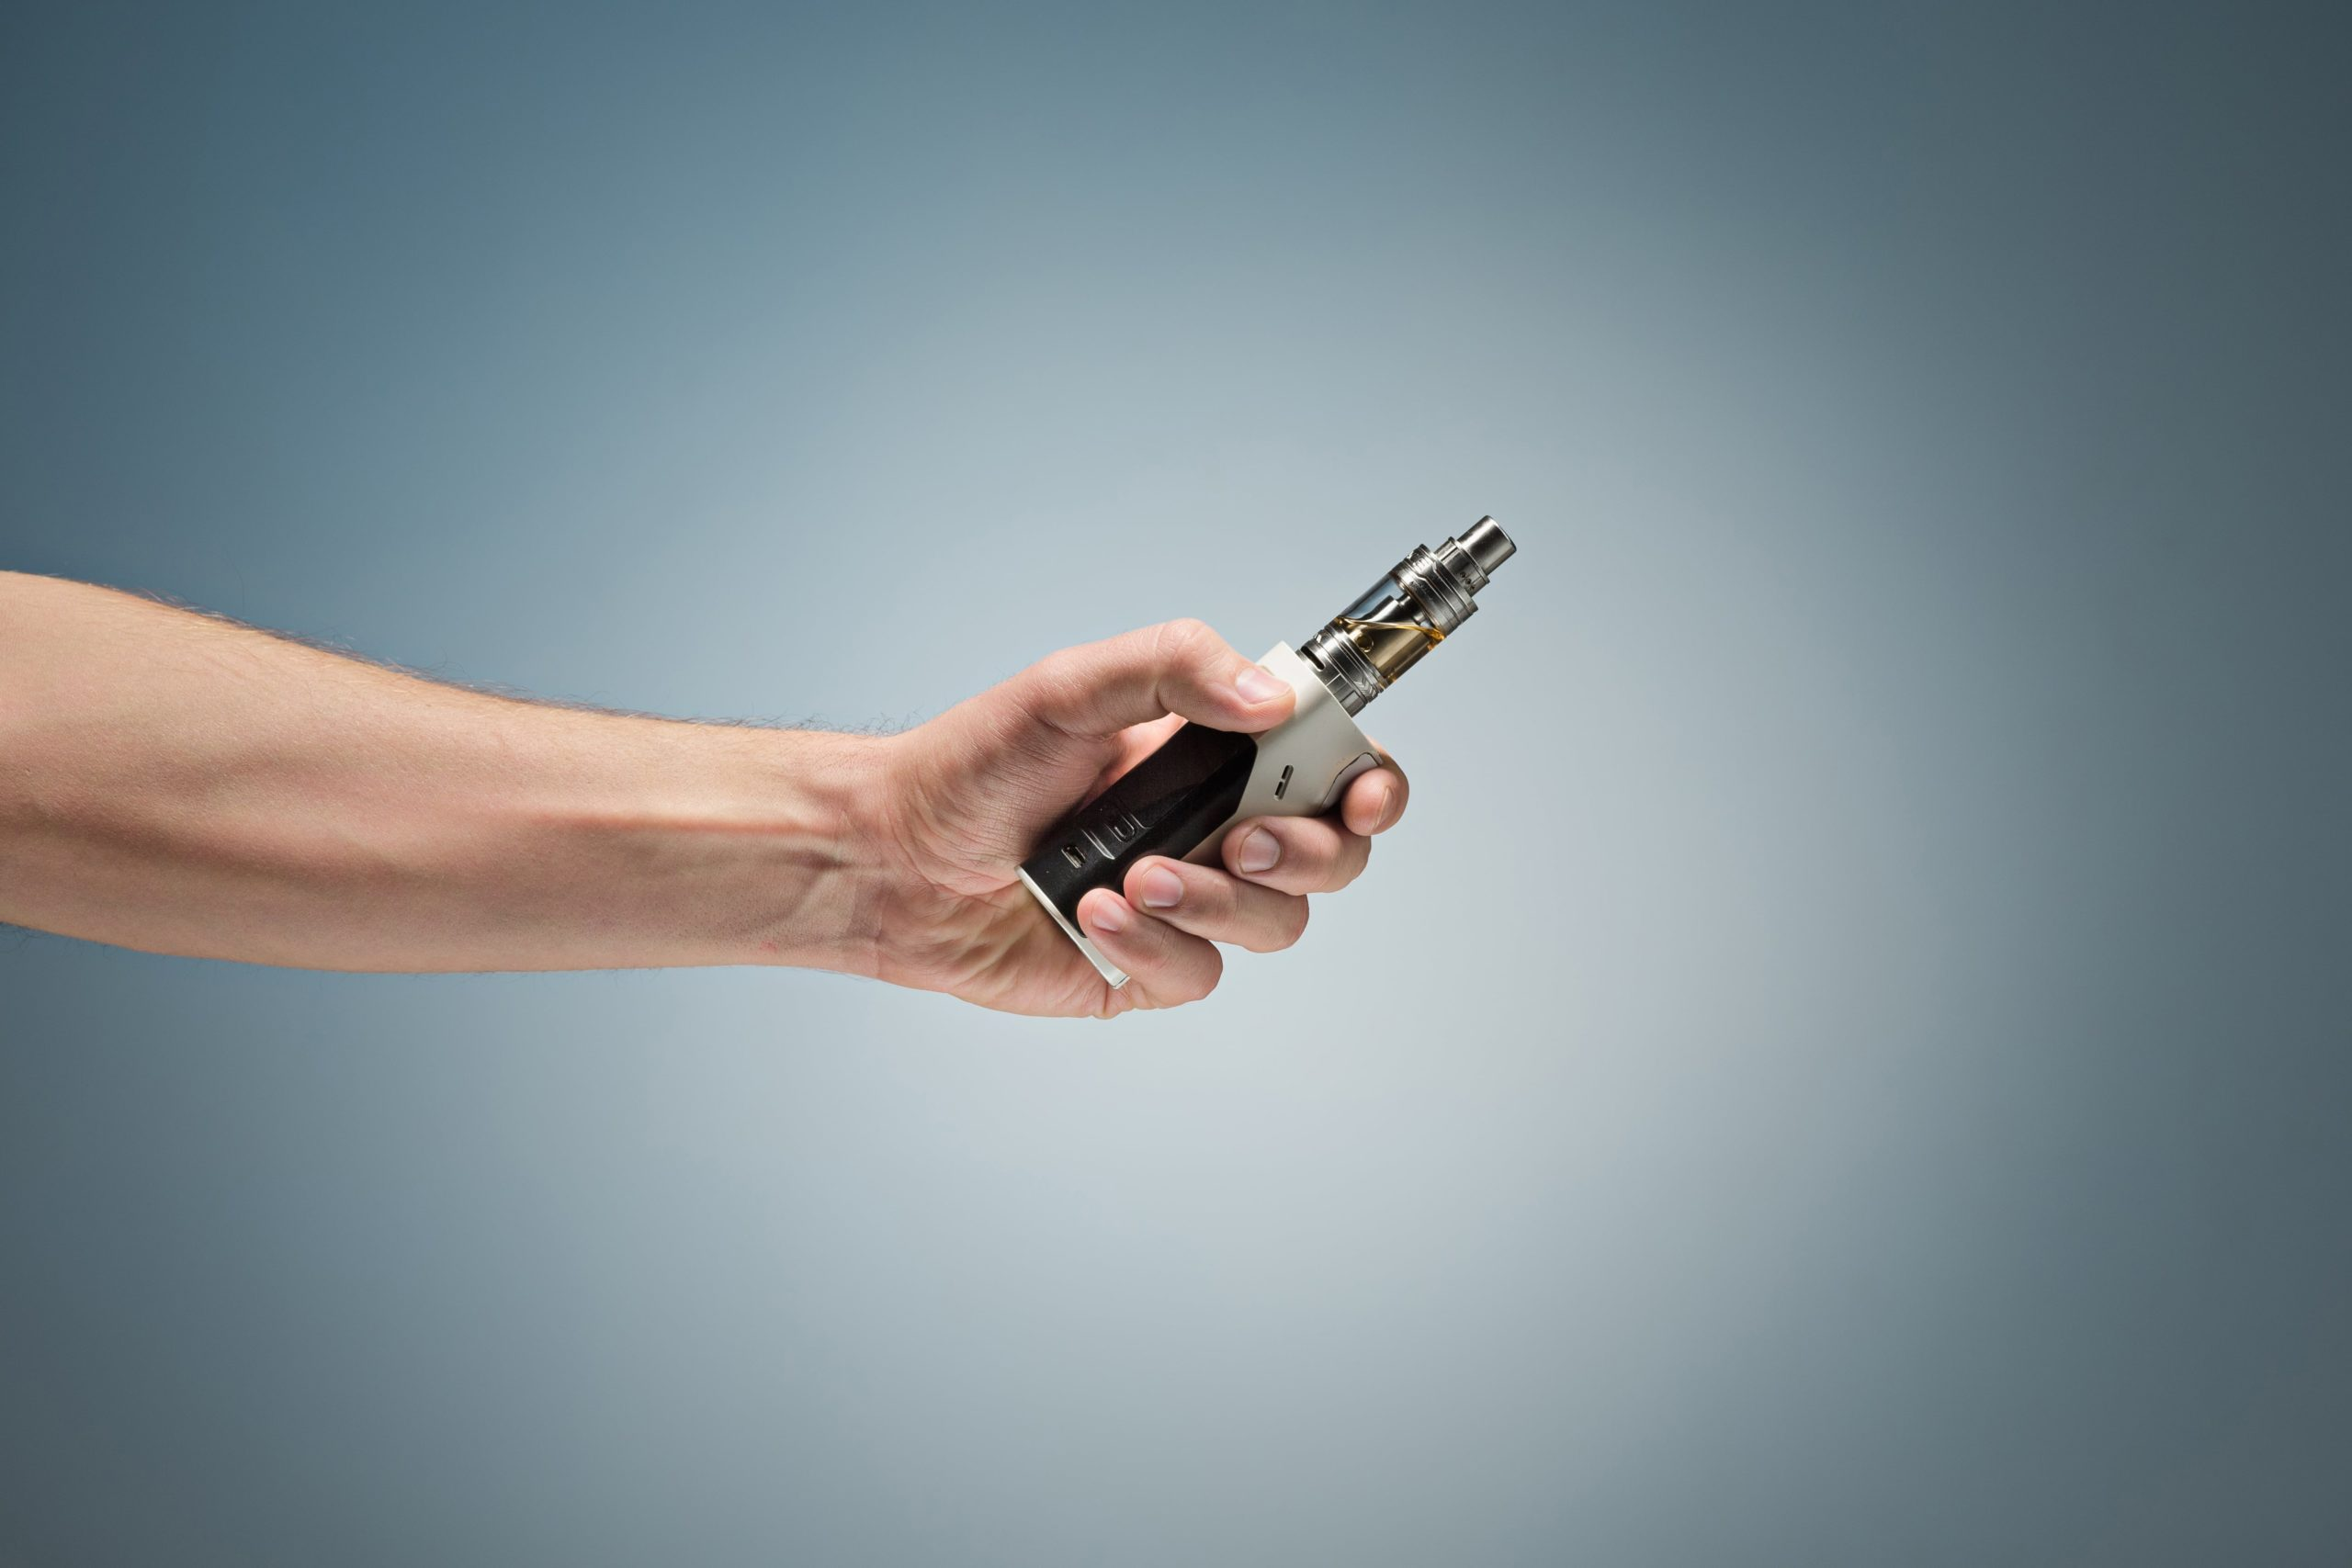 How to Legally Sell Vape Pens on Shopify